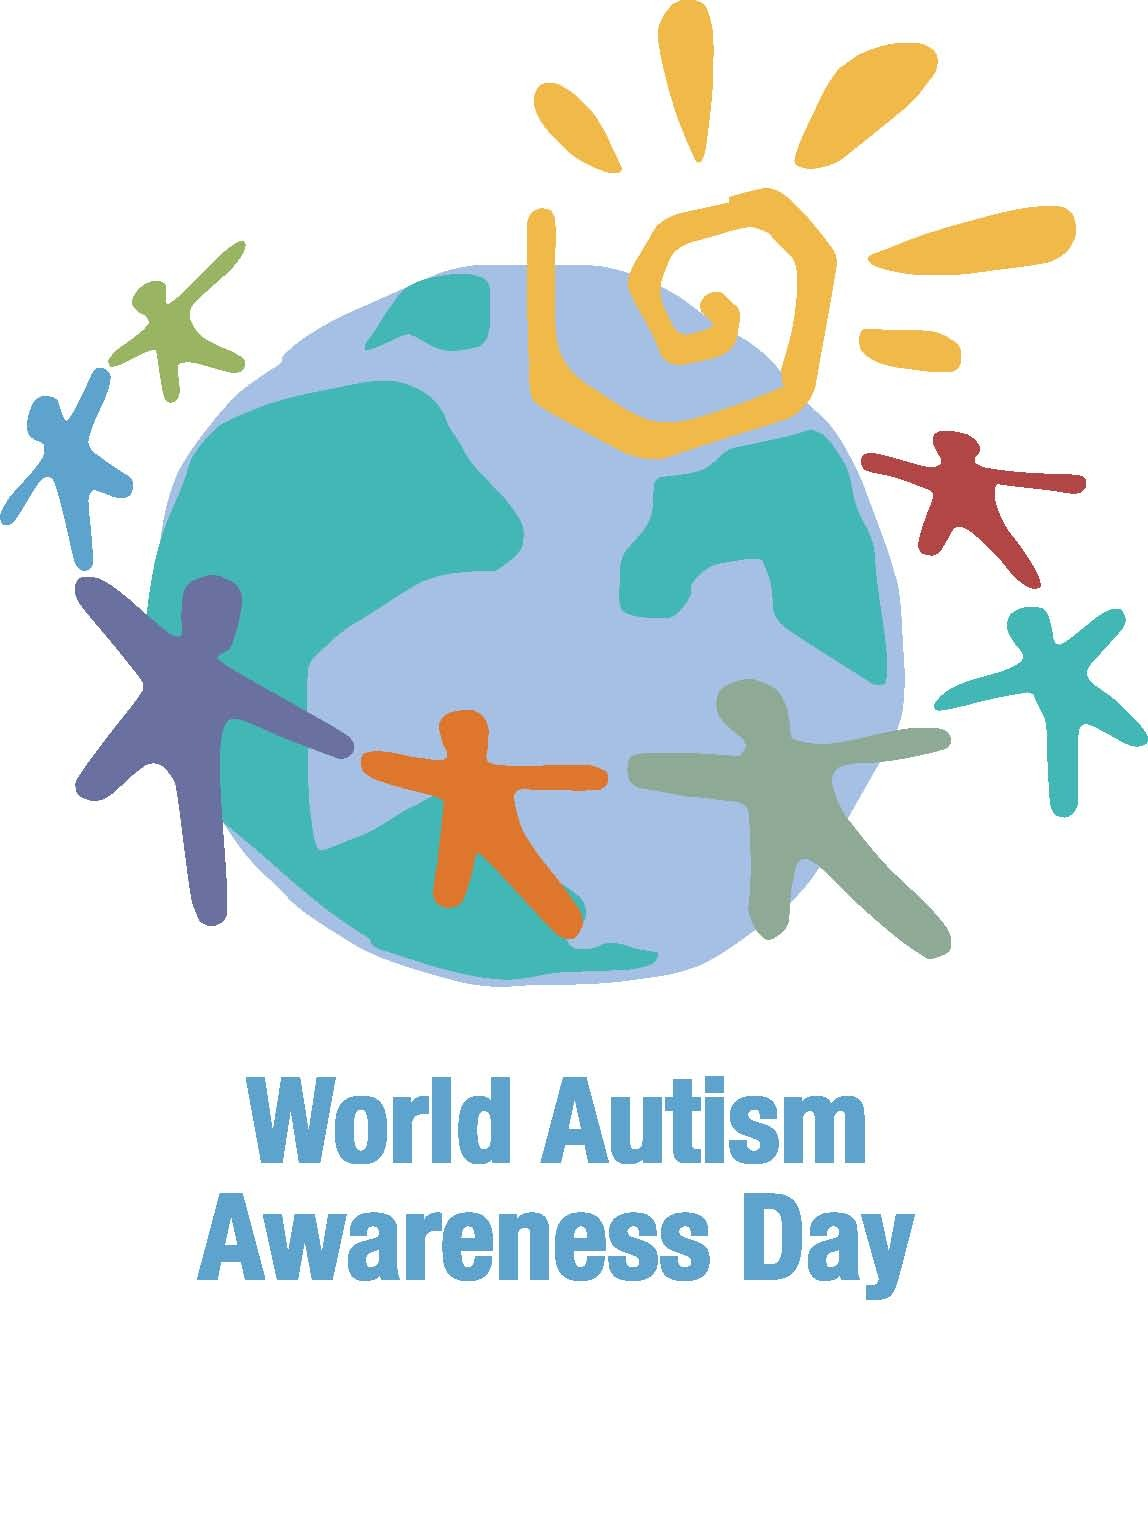 b26e5a155135fd71e4d5_World_Autism_Awareness_Day.jpg